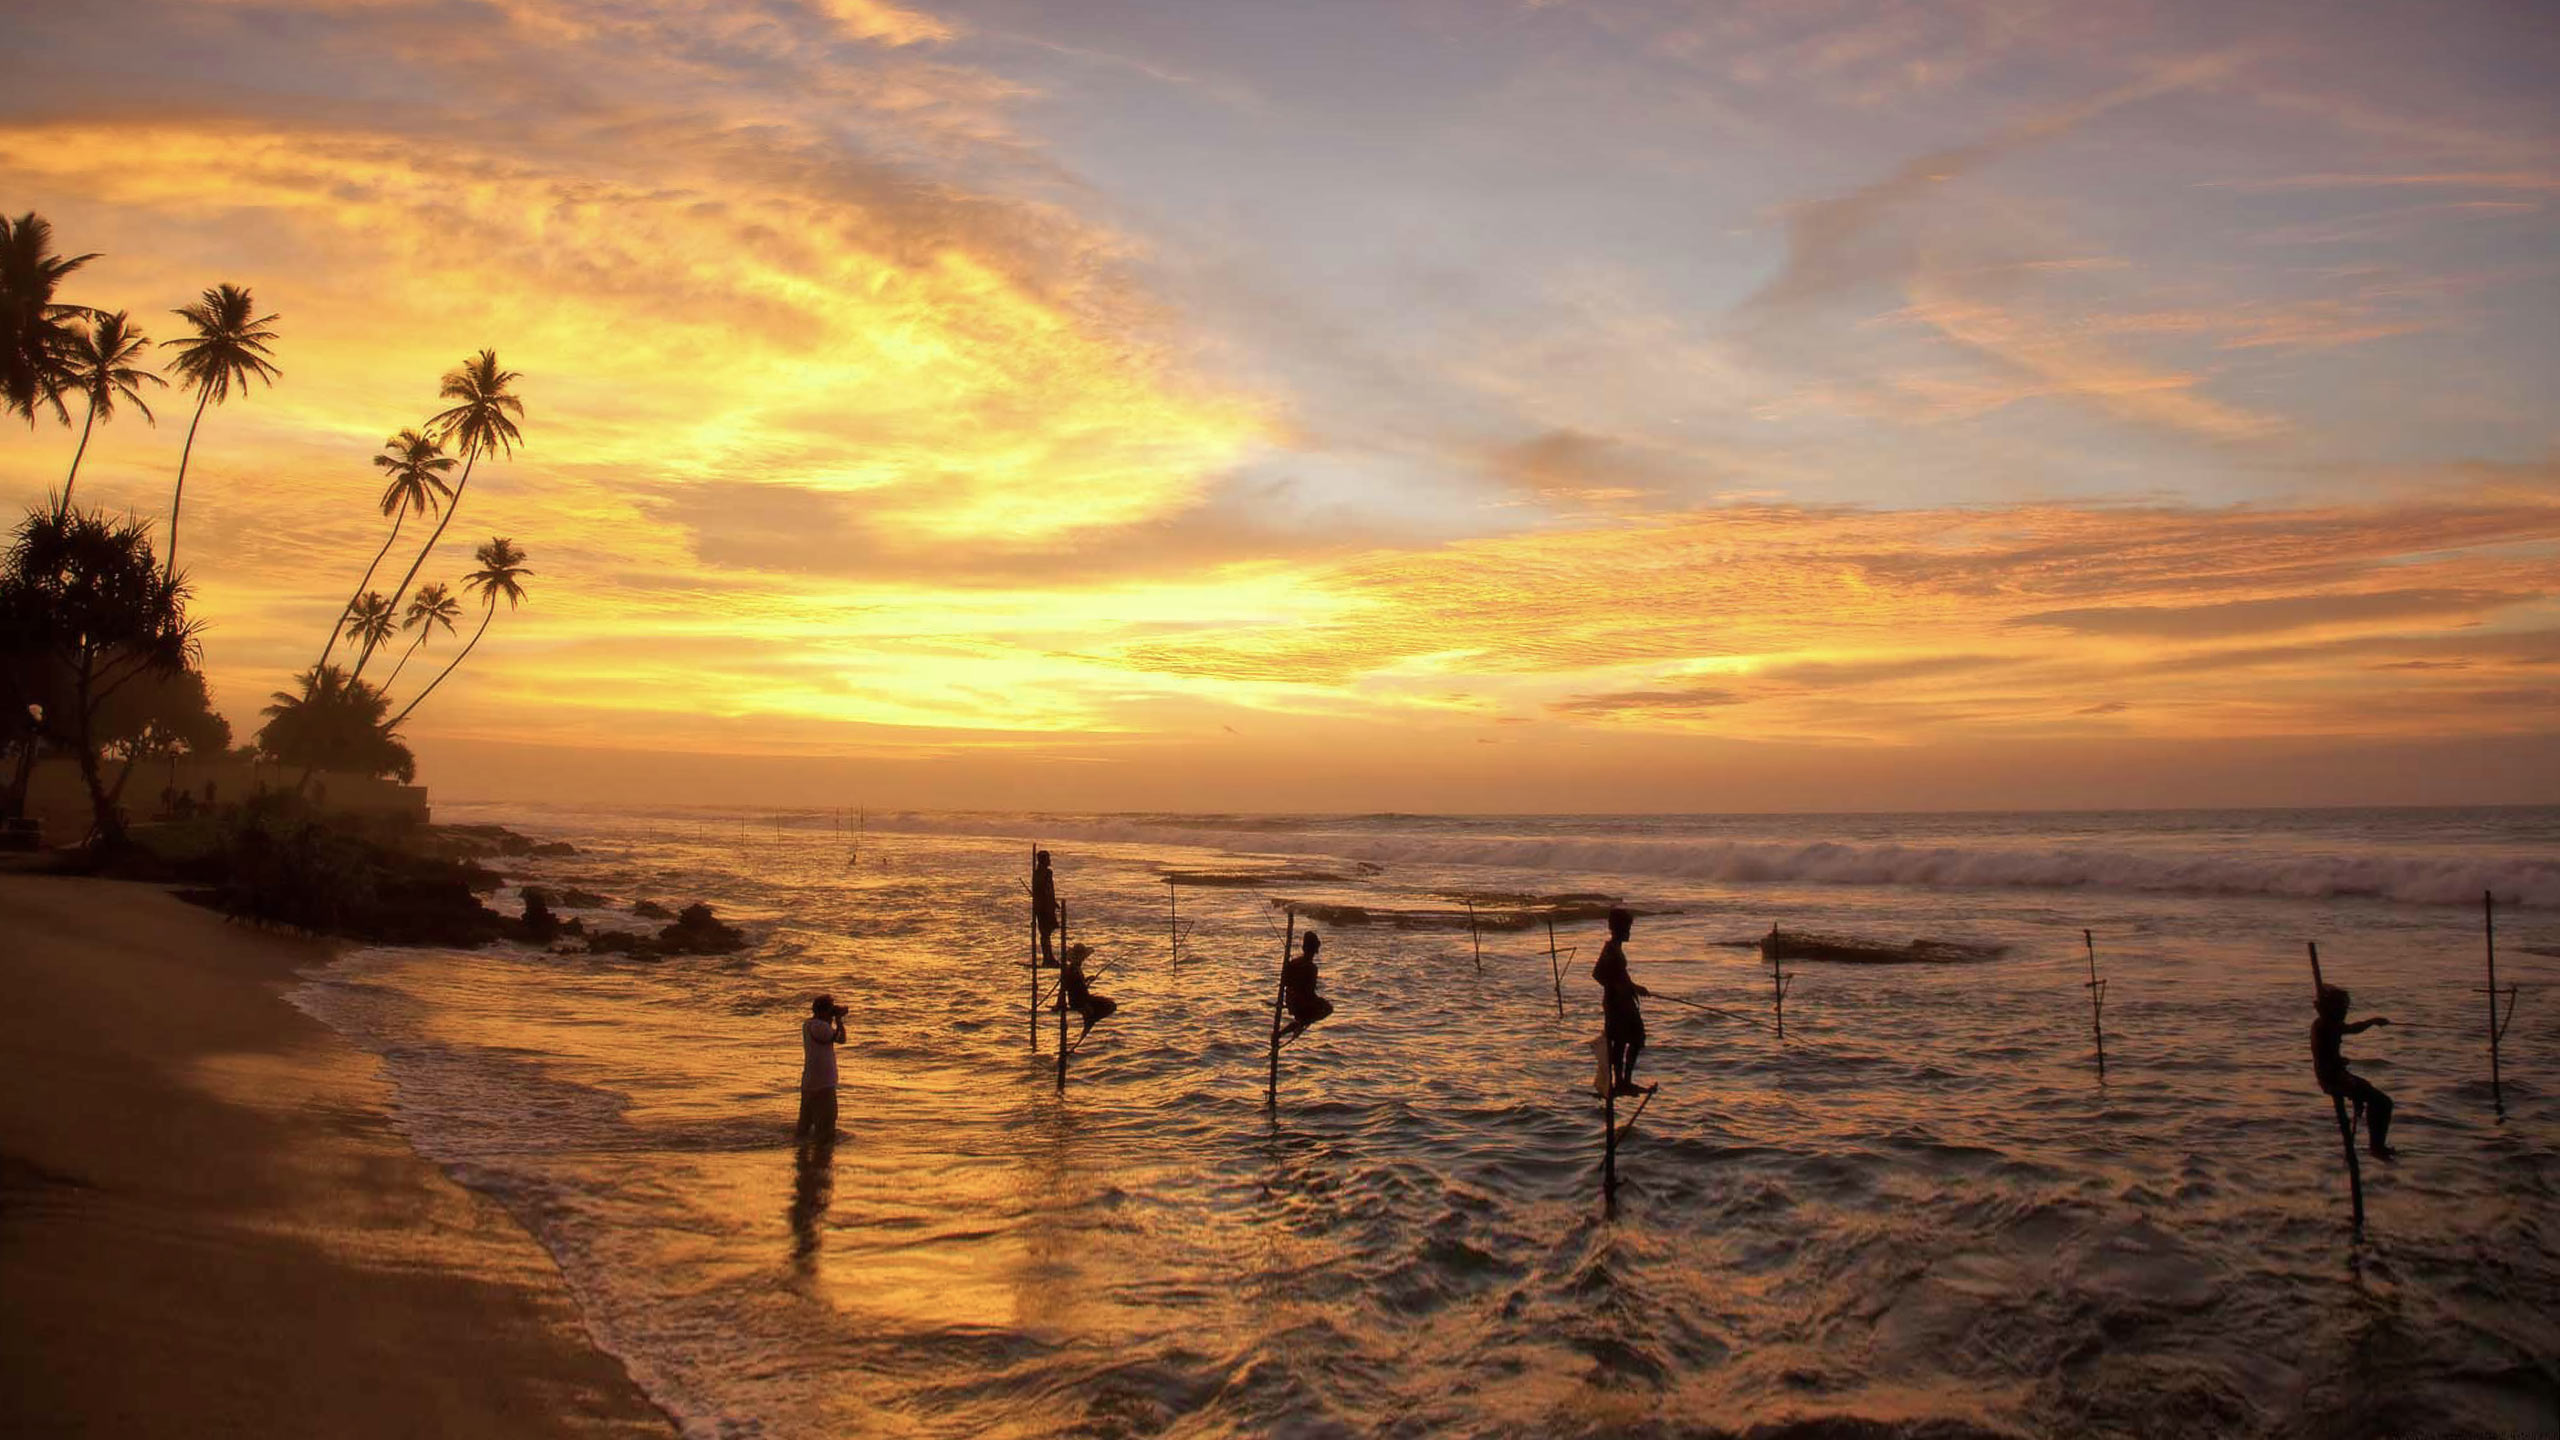 Traditional stilt fishing at sunset in Sri Lanka